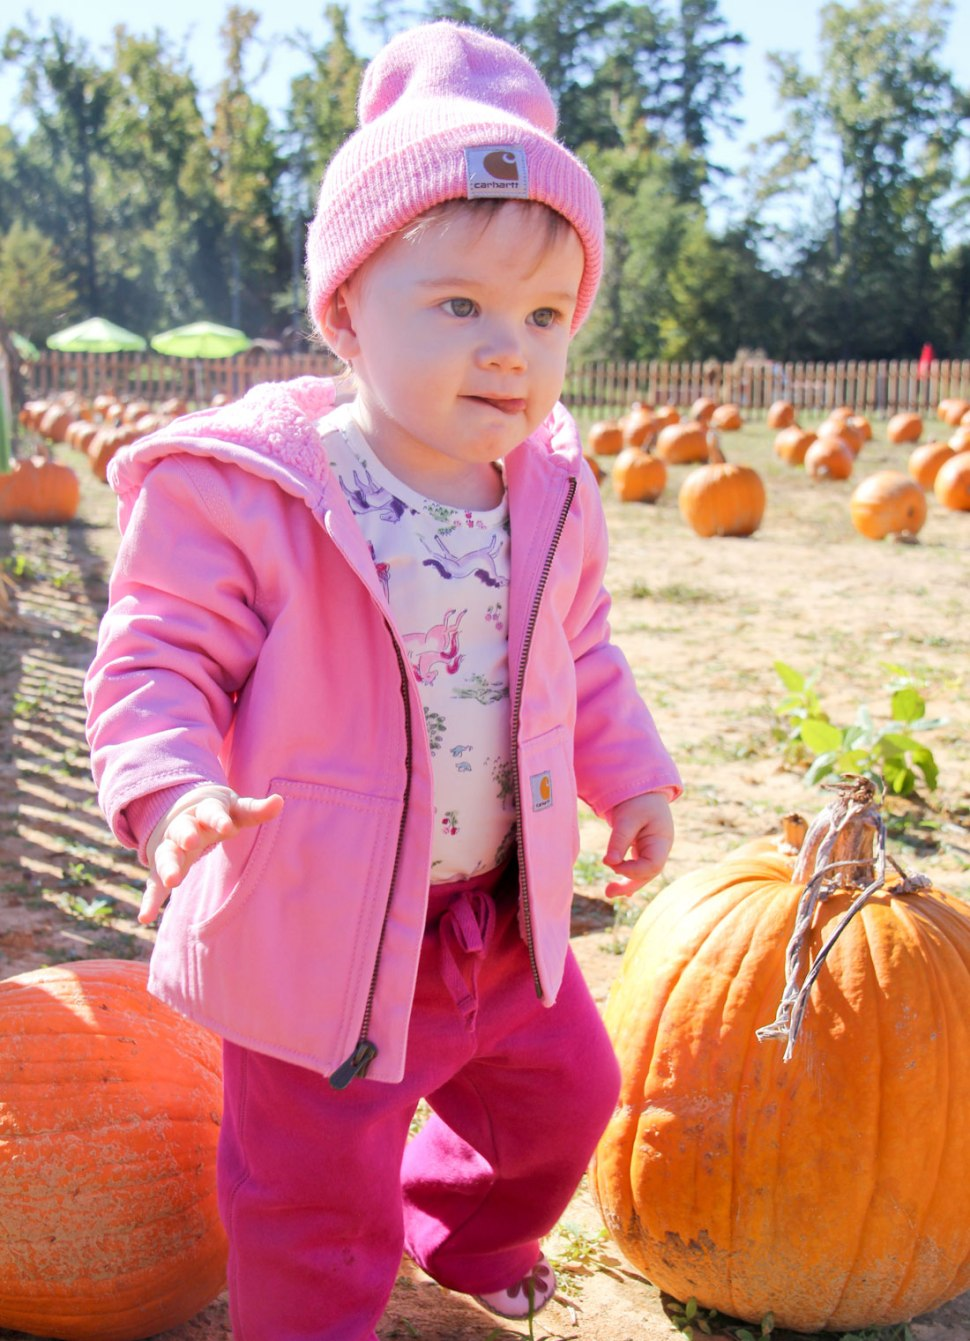 Carhartt pumpkin patch